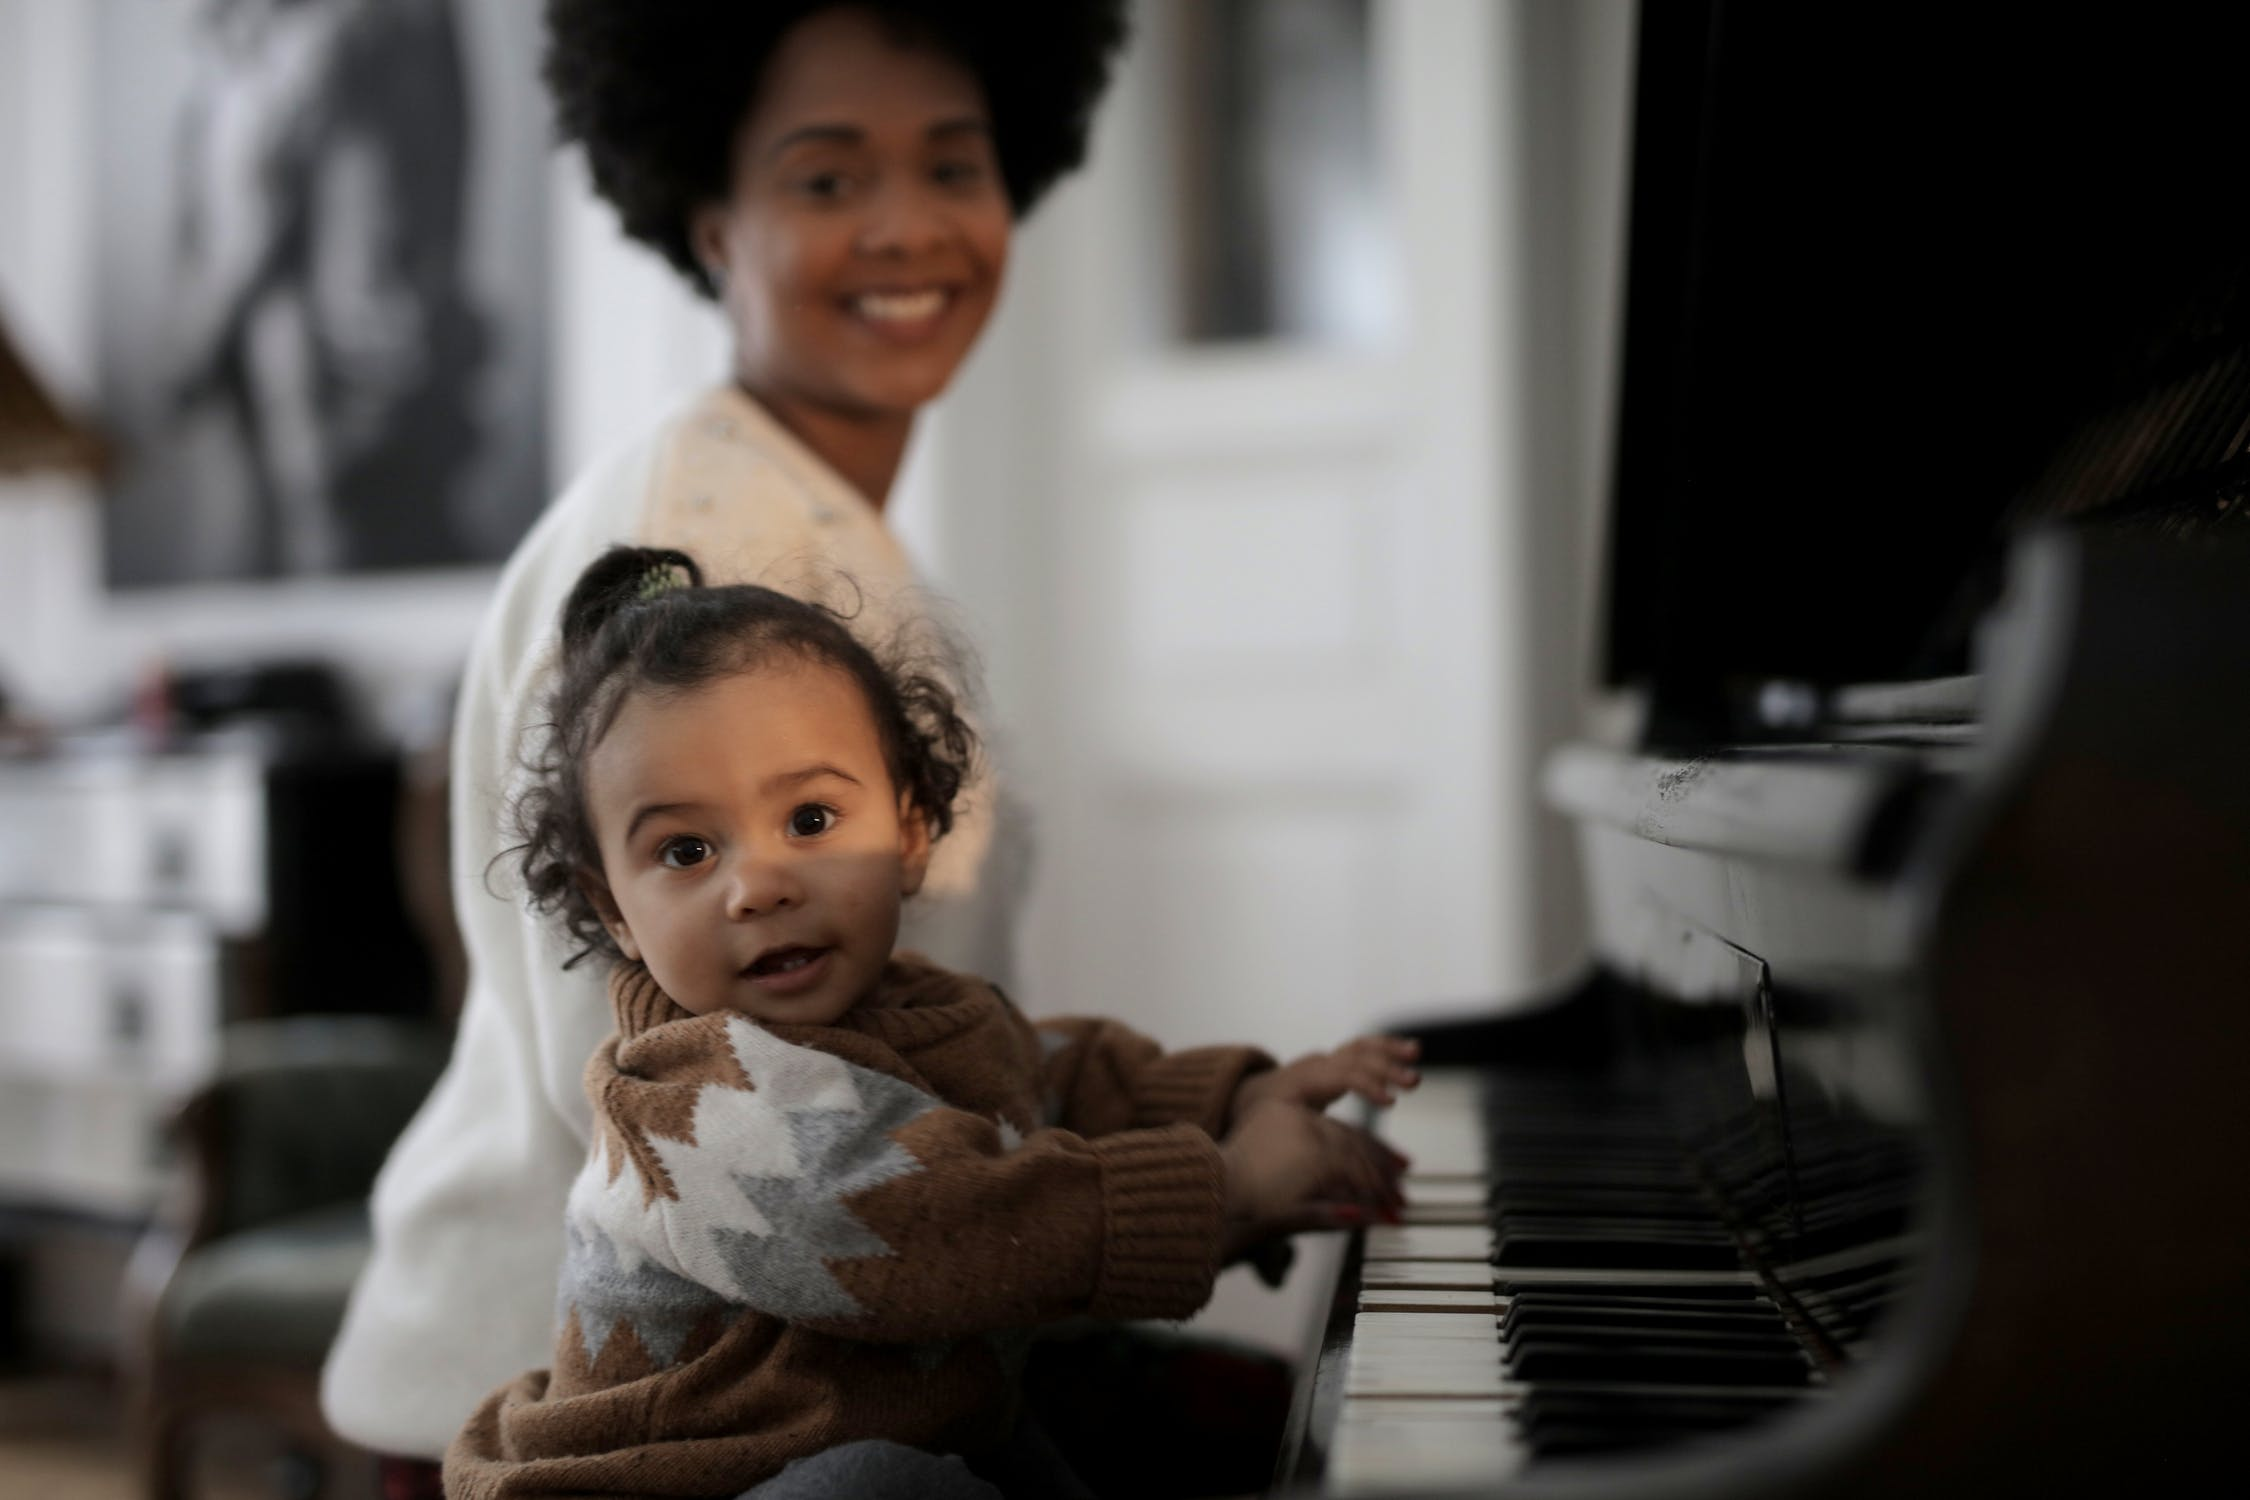 Even Babies Can Play Around on the Piano